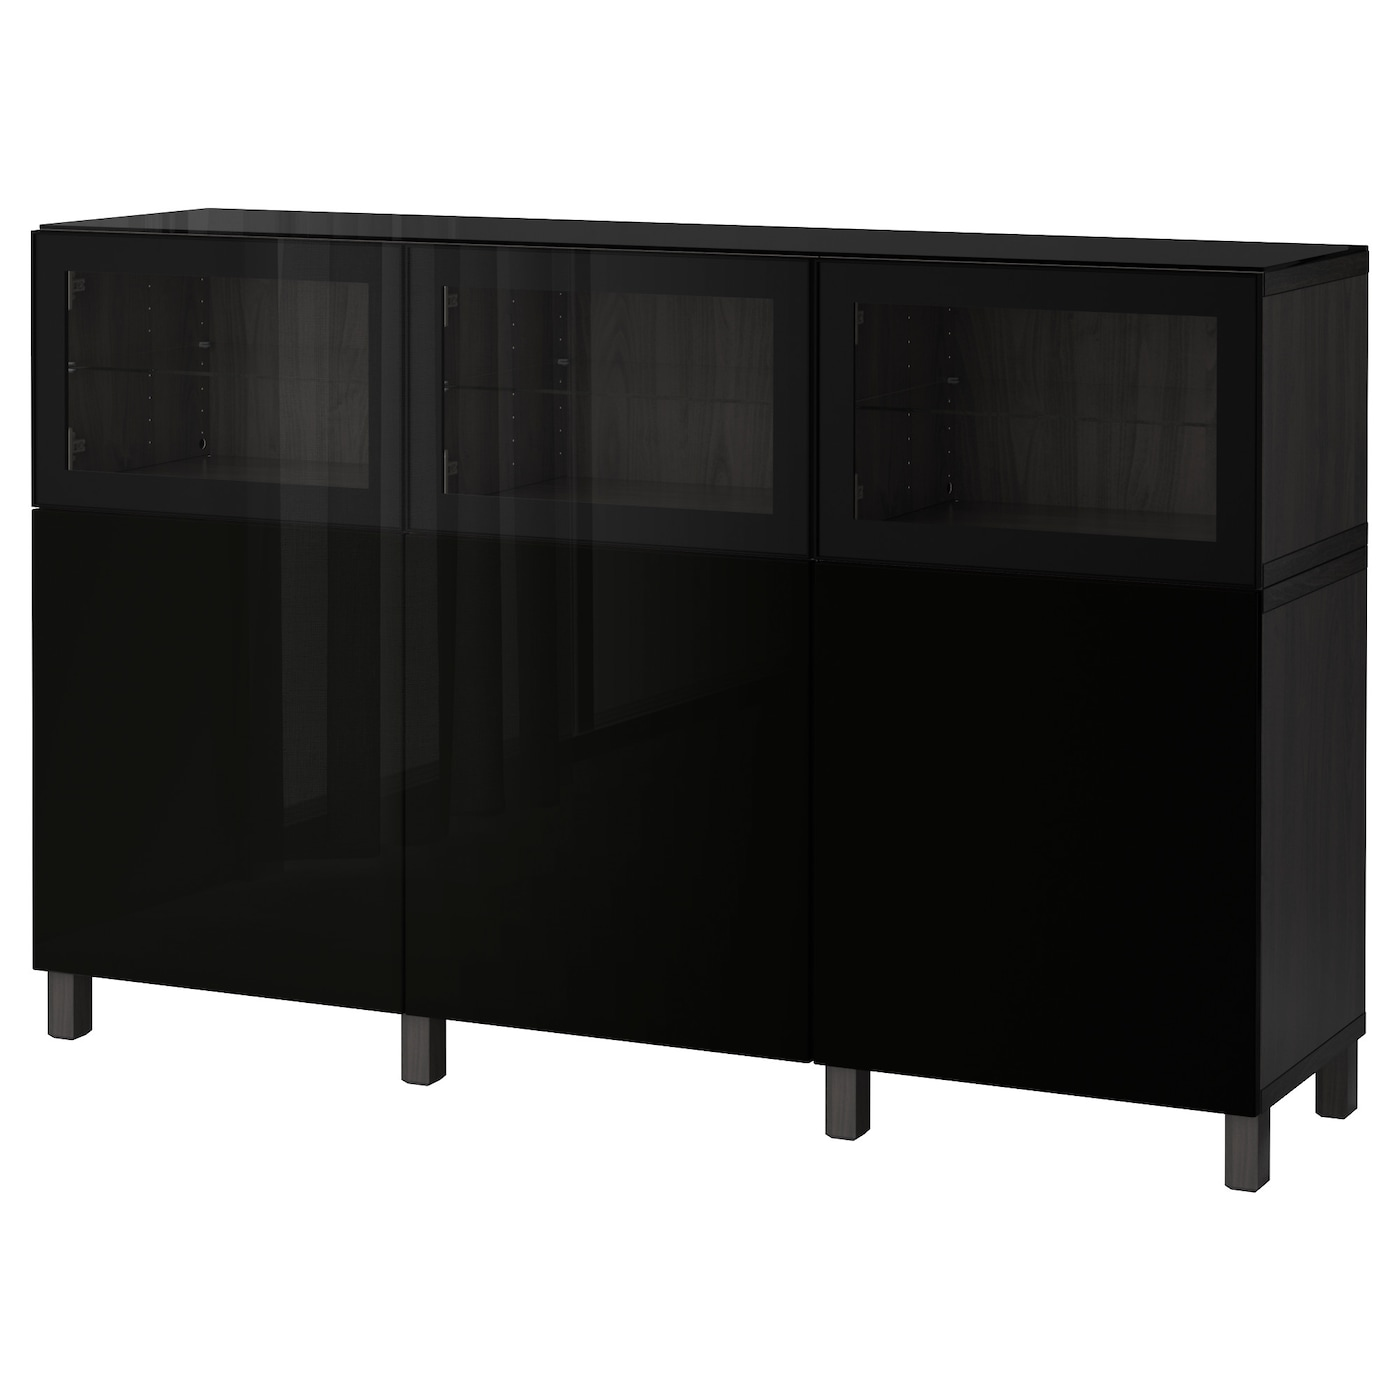 best combinaison rangement portes brun noir selsviken glassvik brillant noir verre transparent. Black Bedroom Furniture Sets. Home Design Ideas